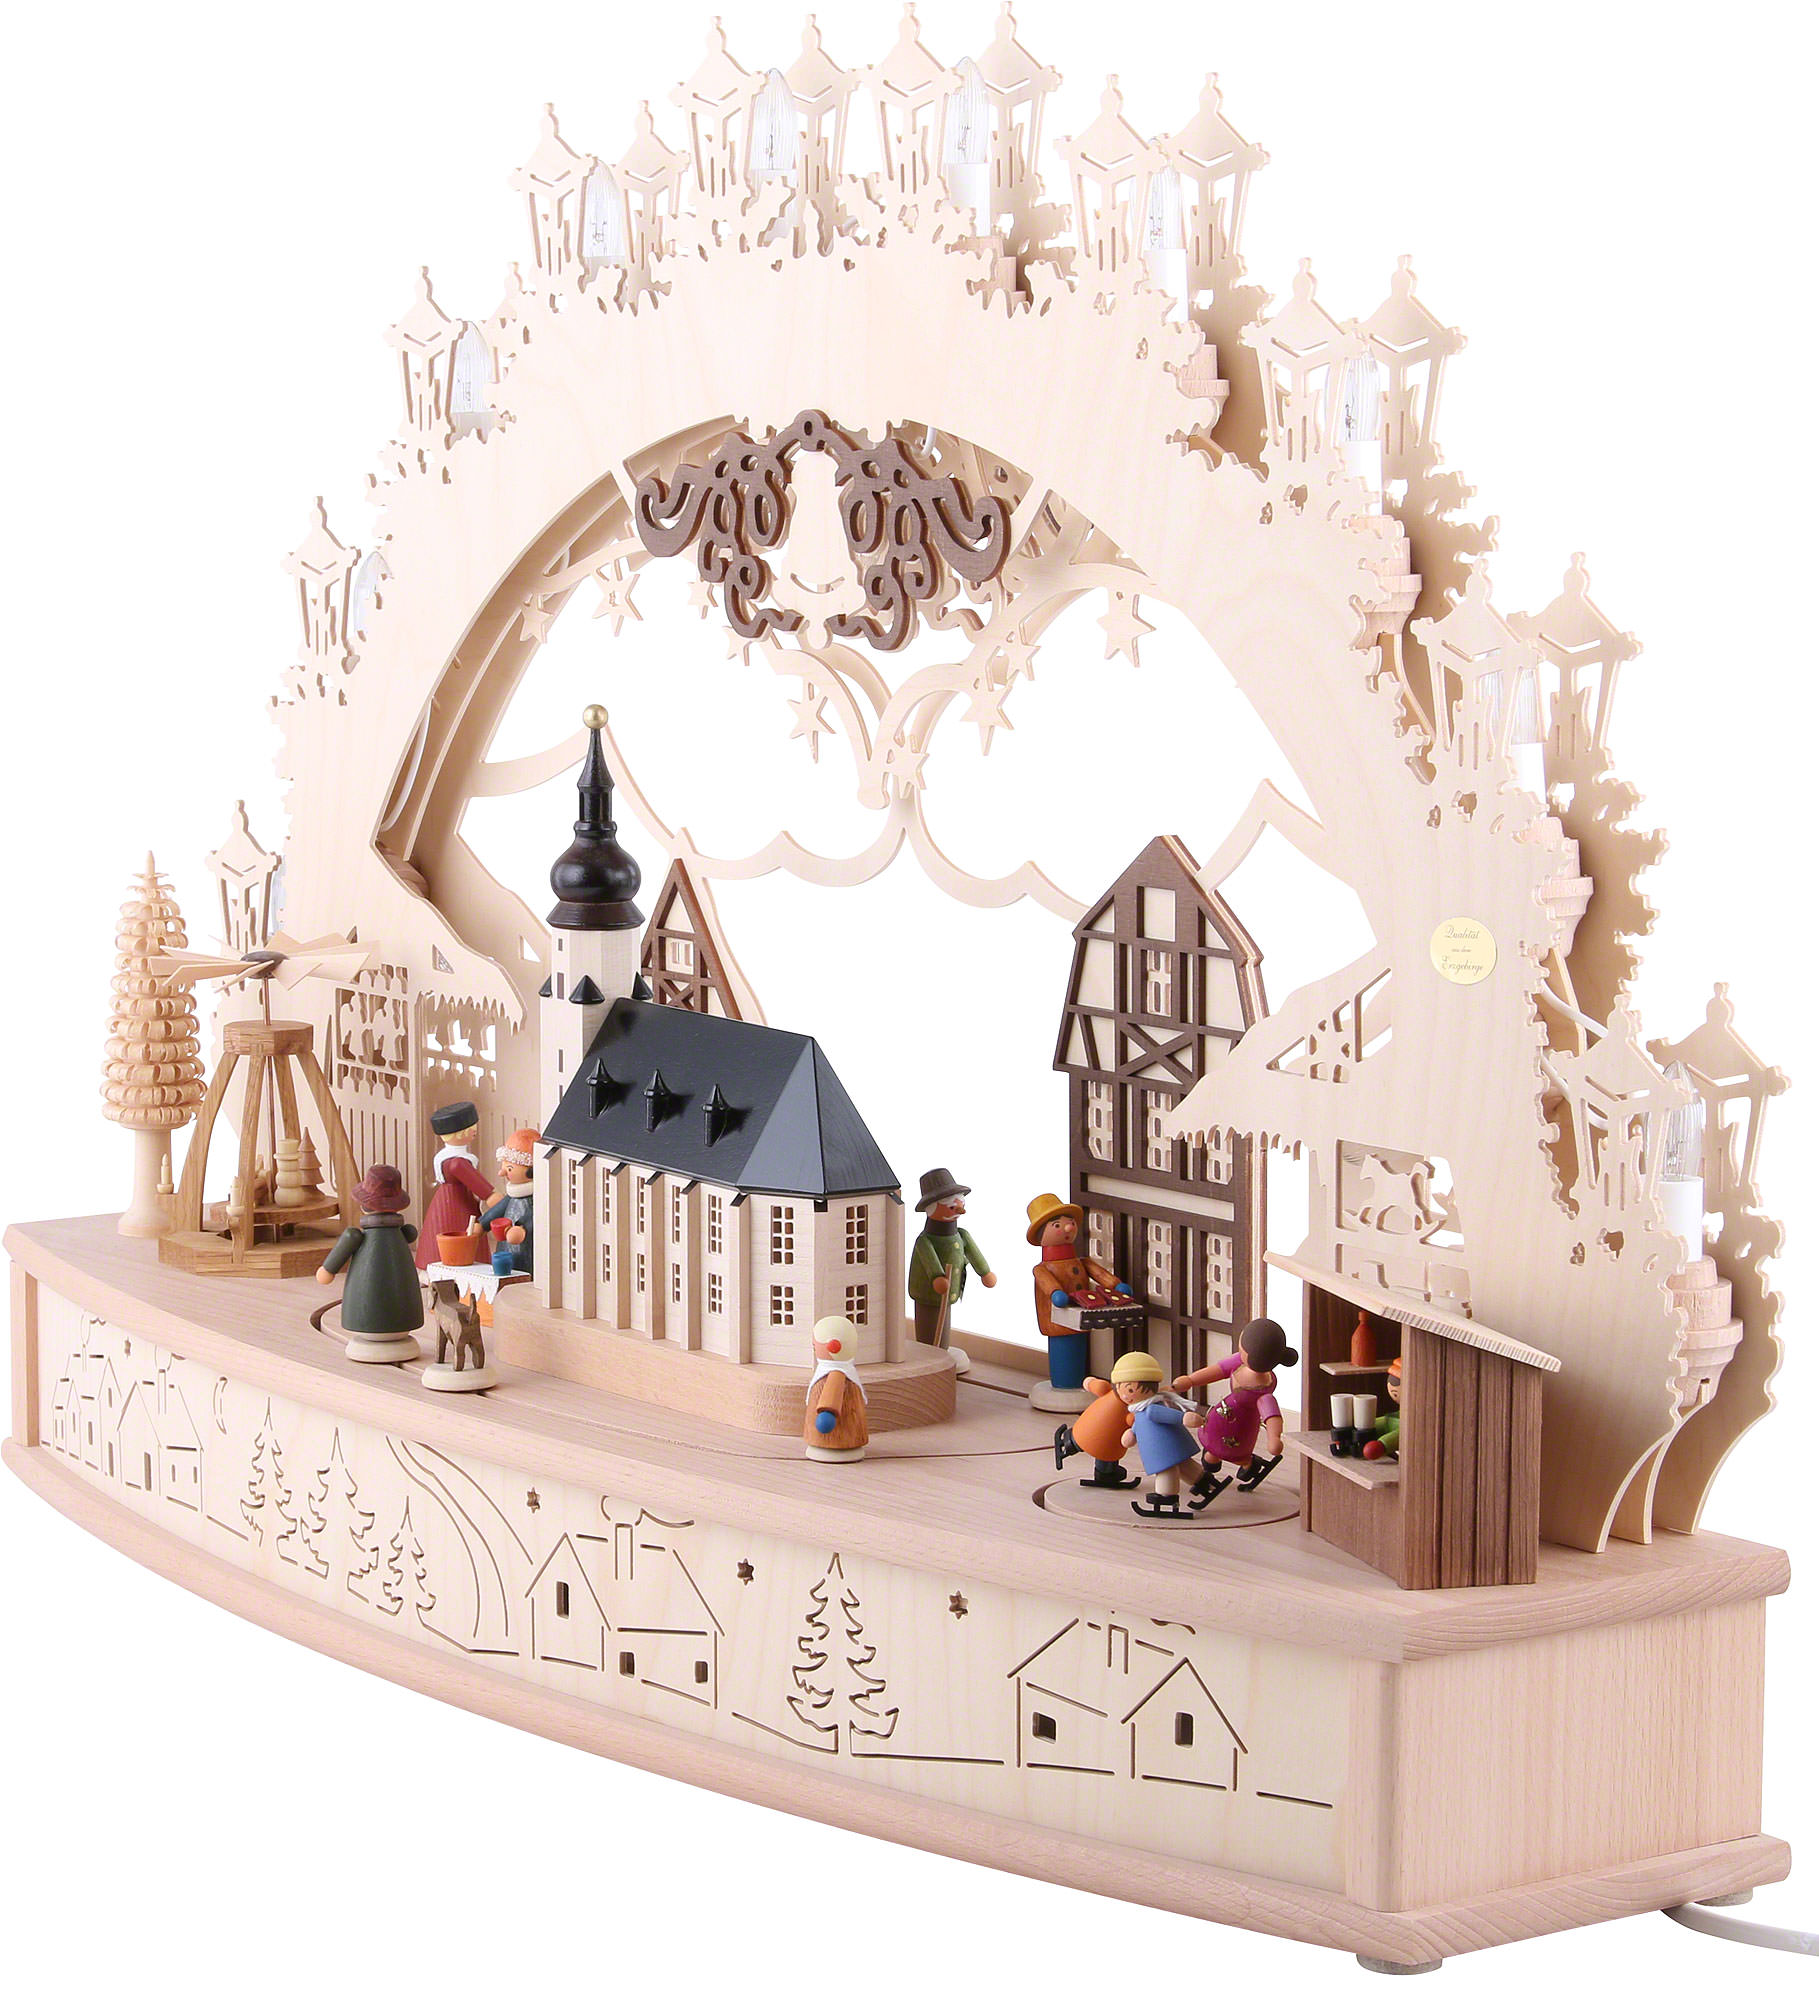 3d candle arch 39 christmas fair 39 68x46x17cm 27x18x7in ch for Arch candle christmas decoration